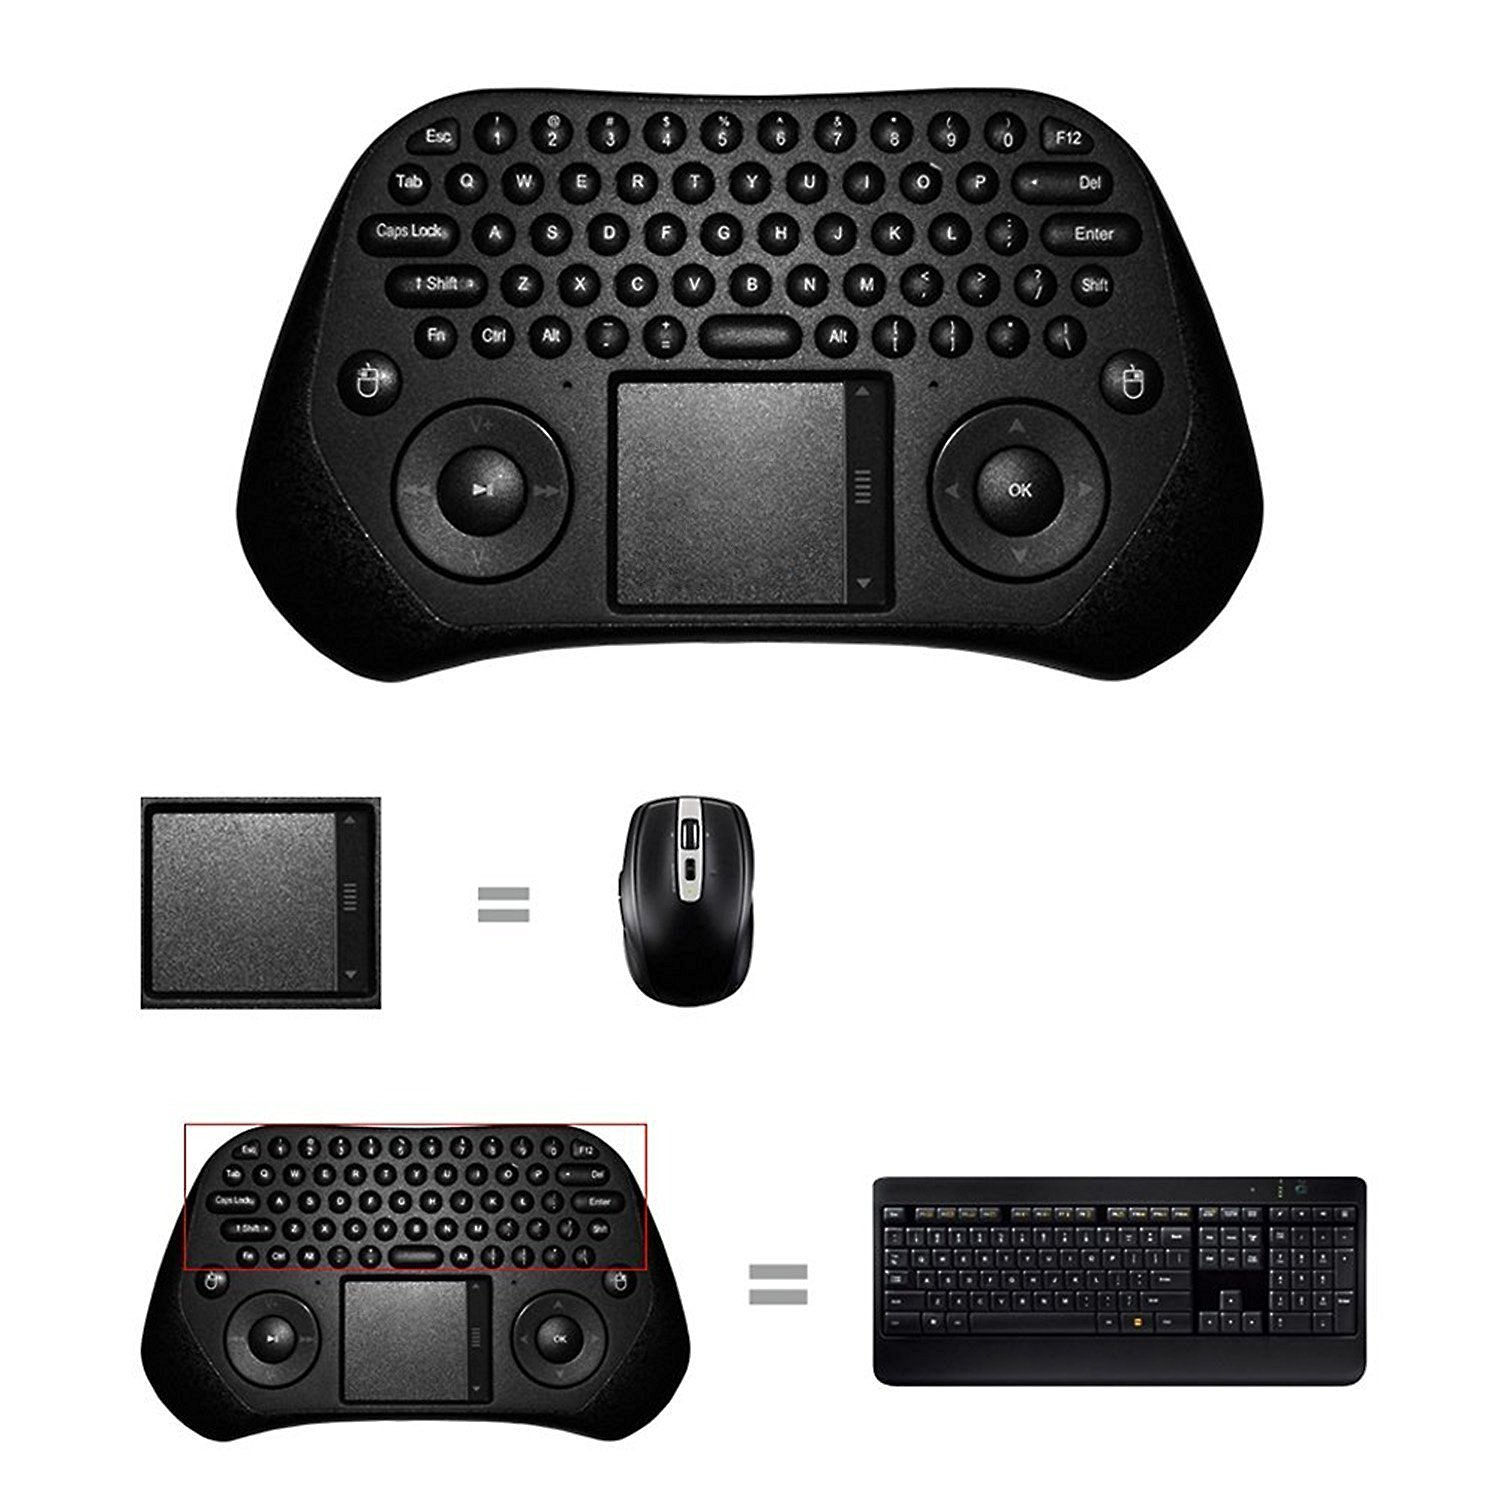 Wireless Keyboard Touchpad Android Handheld Image 3